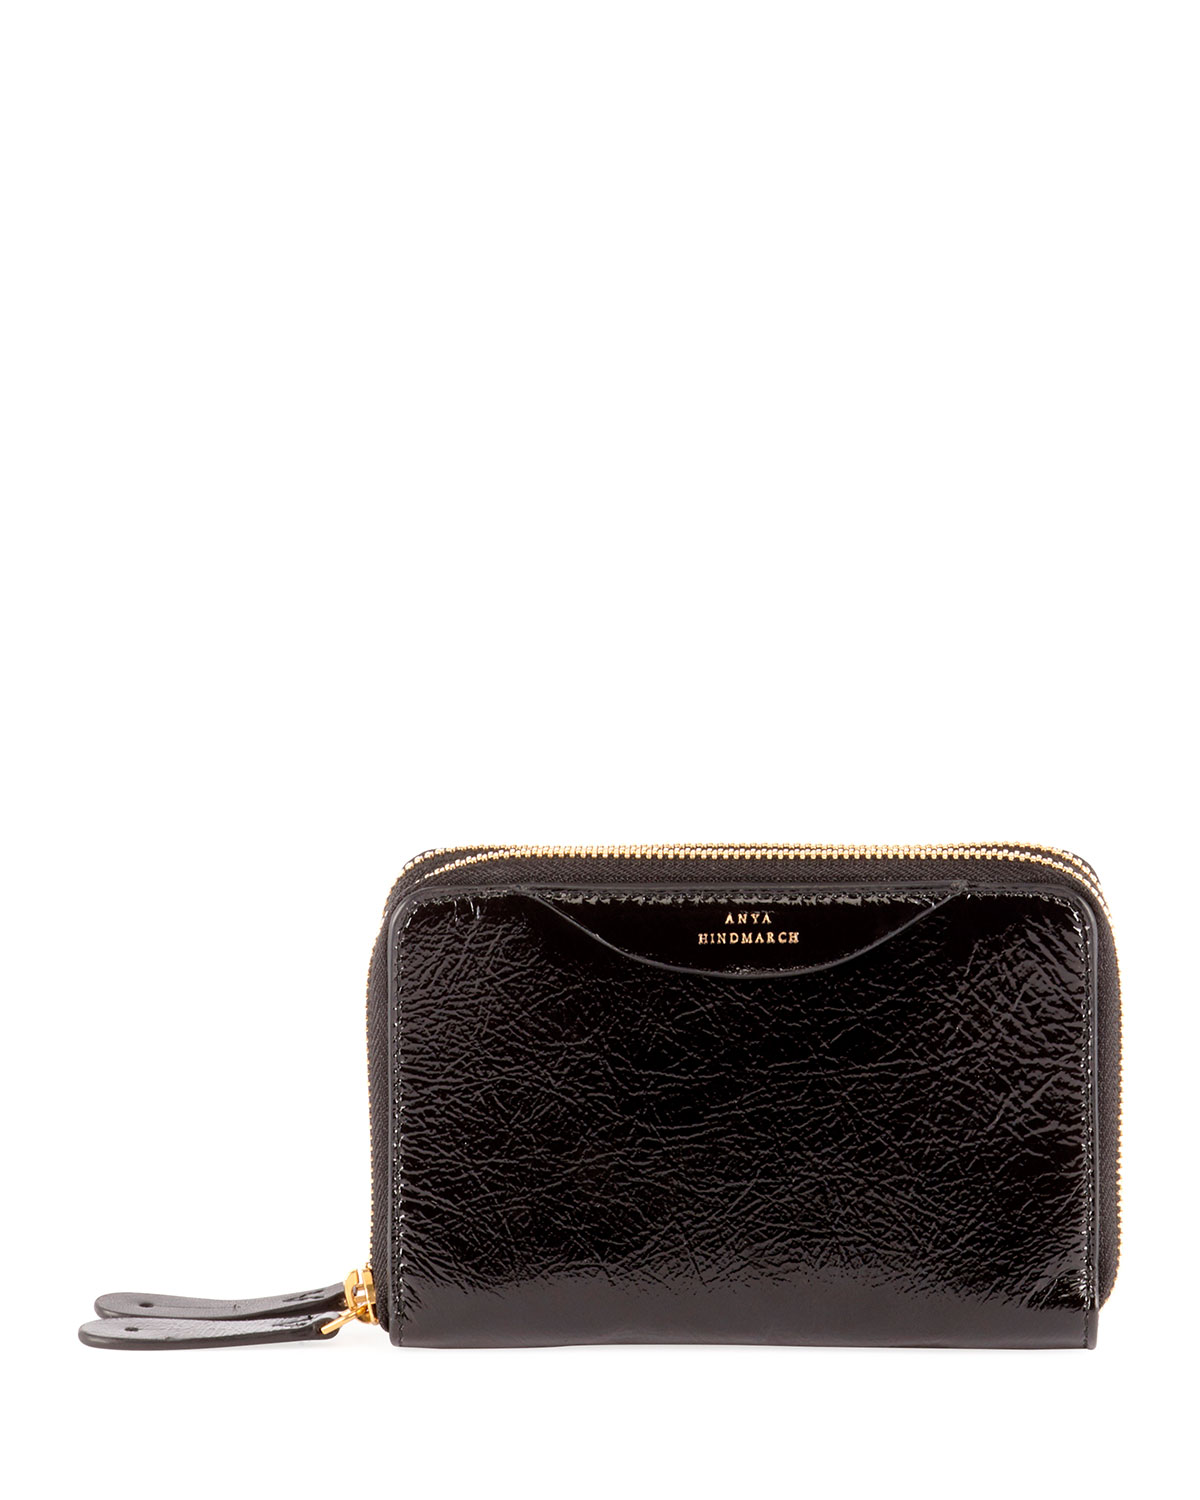 ANYA HINDMARCH STACK DOUBLE SHINY WALLET, BLACK